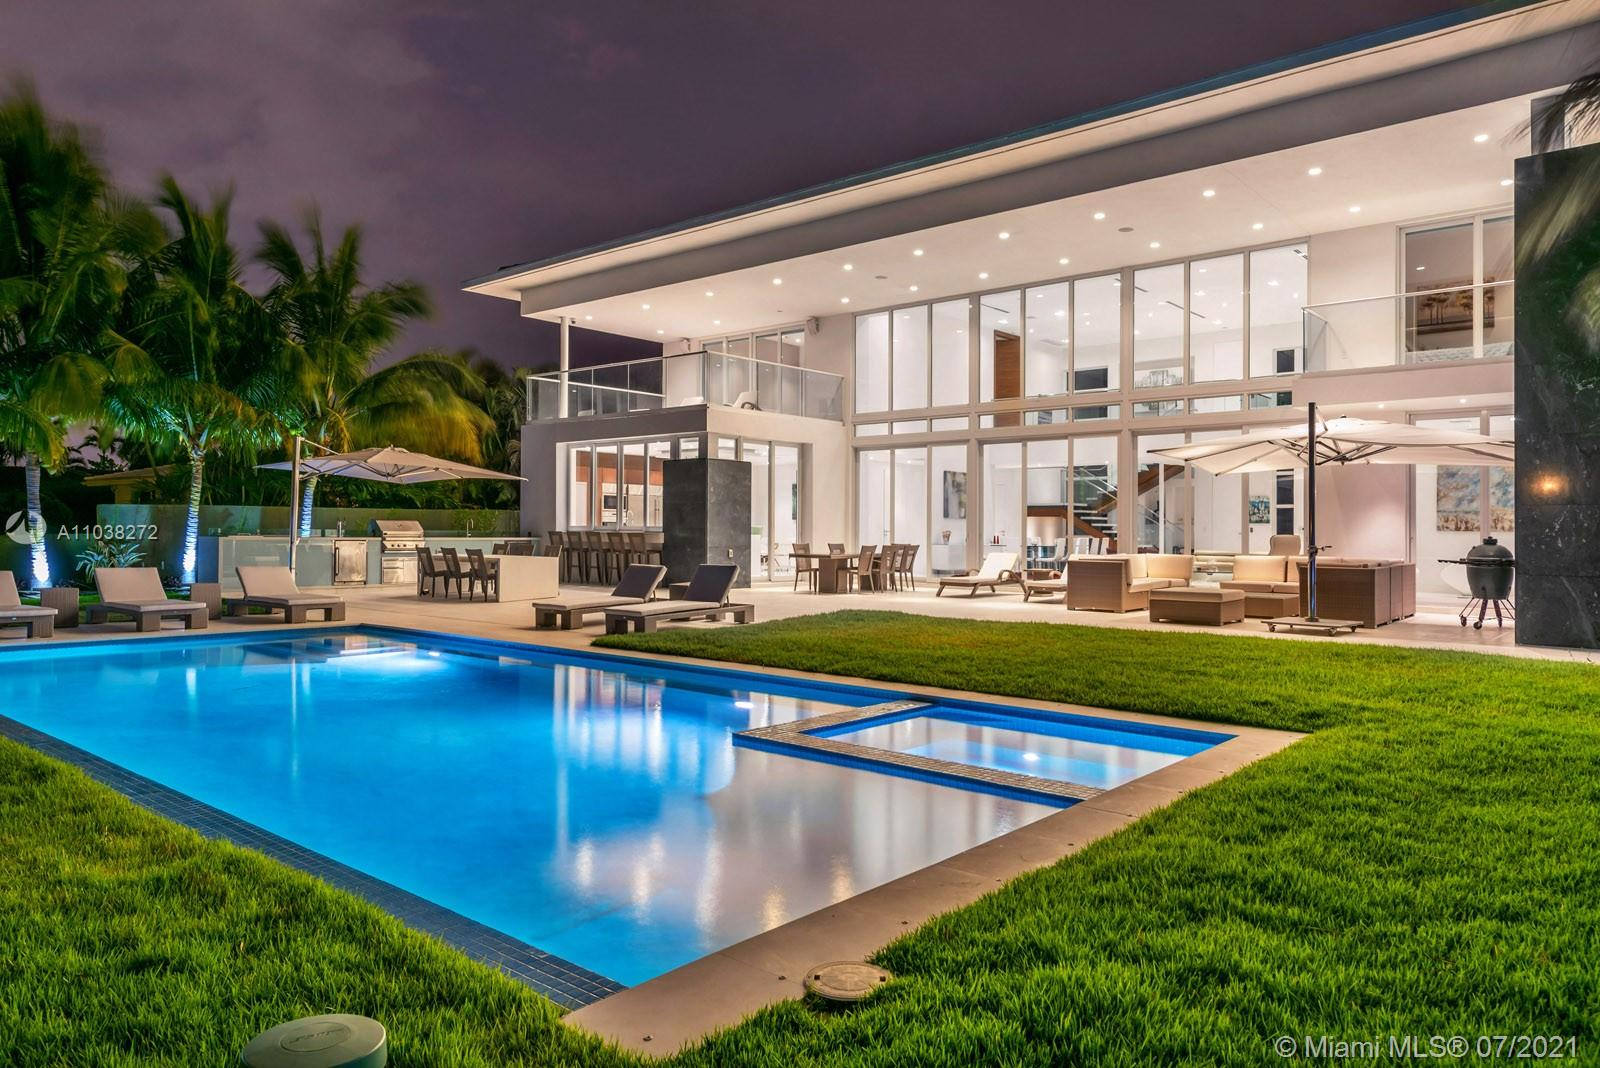 Contemporary waterfront estate in Golden isles, one of S. Florida's most sought-after waterfront communities. Large lot (90' x 150'), southern exposure, quiet cul-de-sac street, deep water, ocean access & no fixed bridges to ocean.  Deeded Dock for large vessel.  Spanning over 6,600 sq.ft. 5BR/6BA, including a sumptuous master suite with private terrace, ideal for relaxation and entertaining.  Bright and spacious living area allows for an enviable indoor-outdoor lifestyle, walls of glass lead to the lush backyard, pool area and summer kitchen.  The home is superbly equipped with a custom home theater, gourmet kitchen, bar and open dining area.  Other appointments: elevator, motorized window treatments, home automation & lighting control.  Nearby restaurants, shops, beach and more.